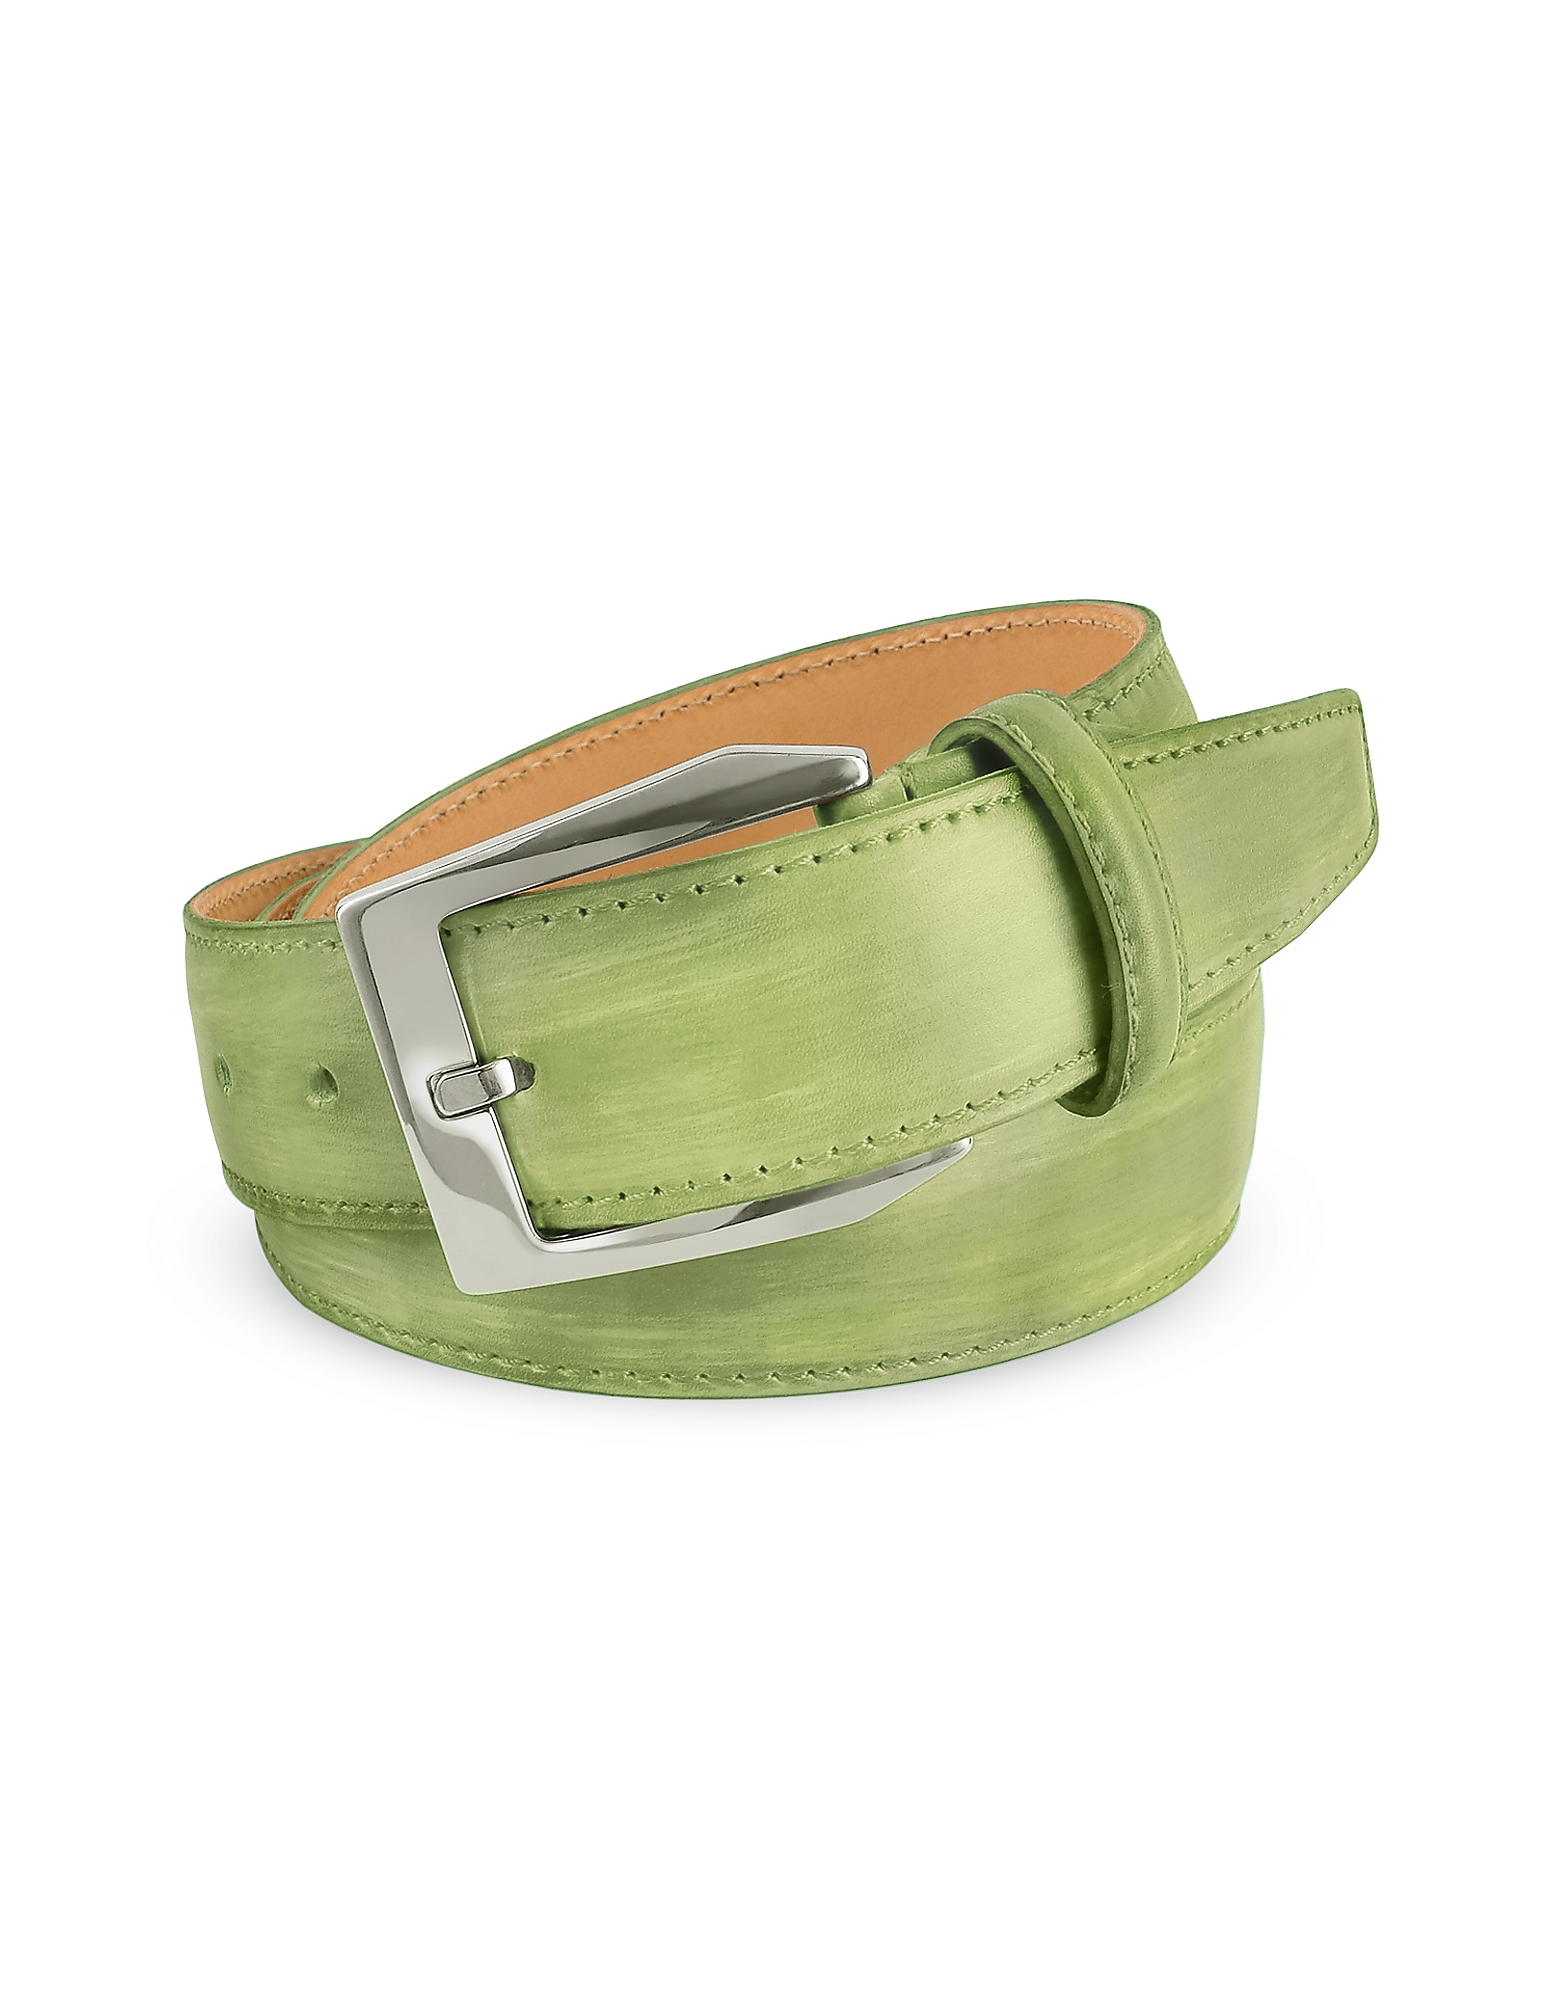 Men's Pistachio Green Hand Painted Italian Leather Belt